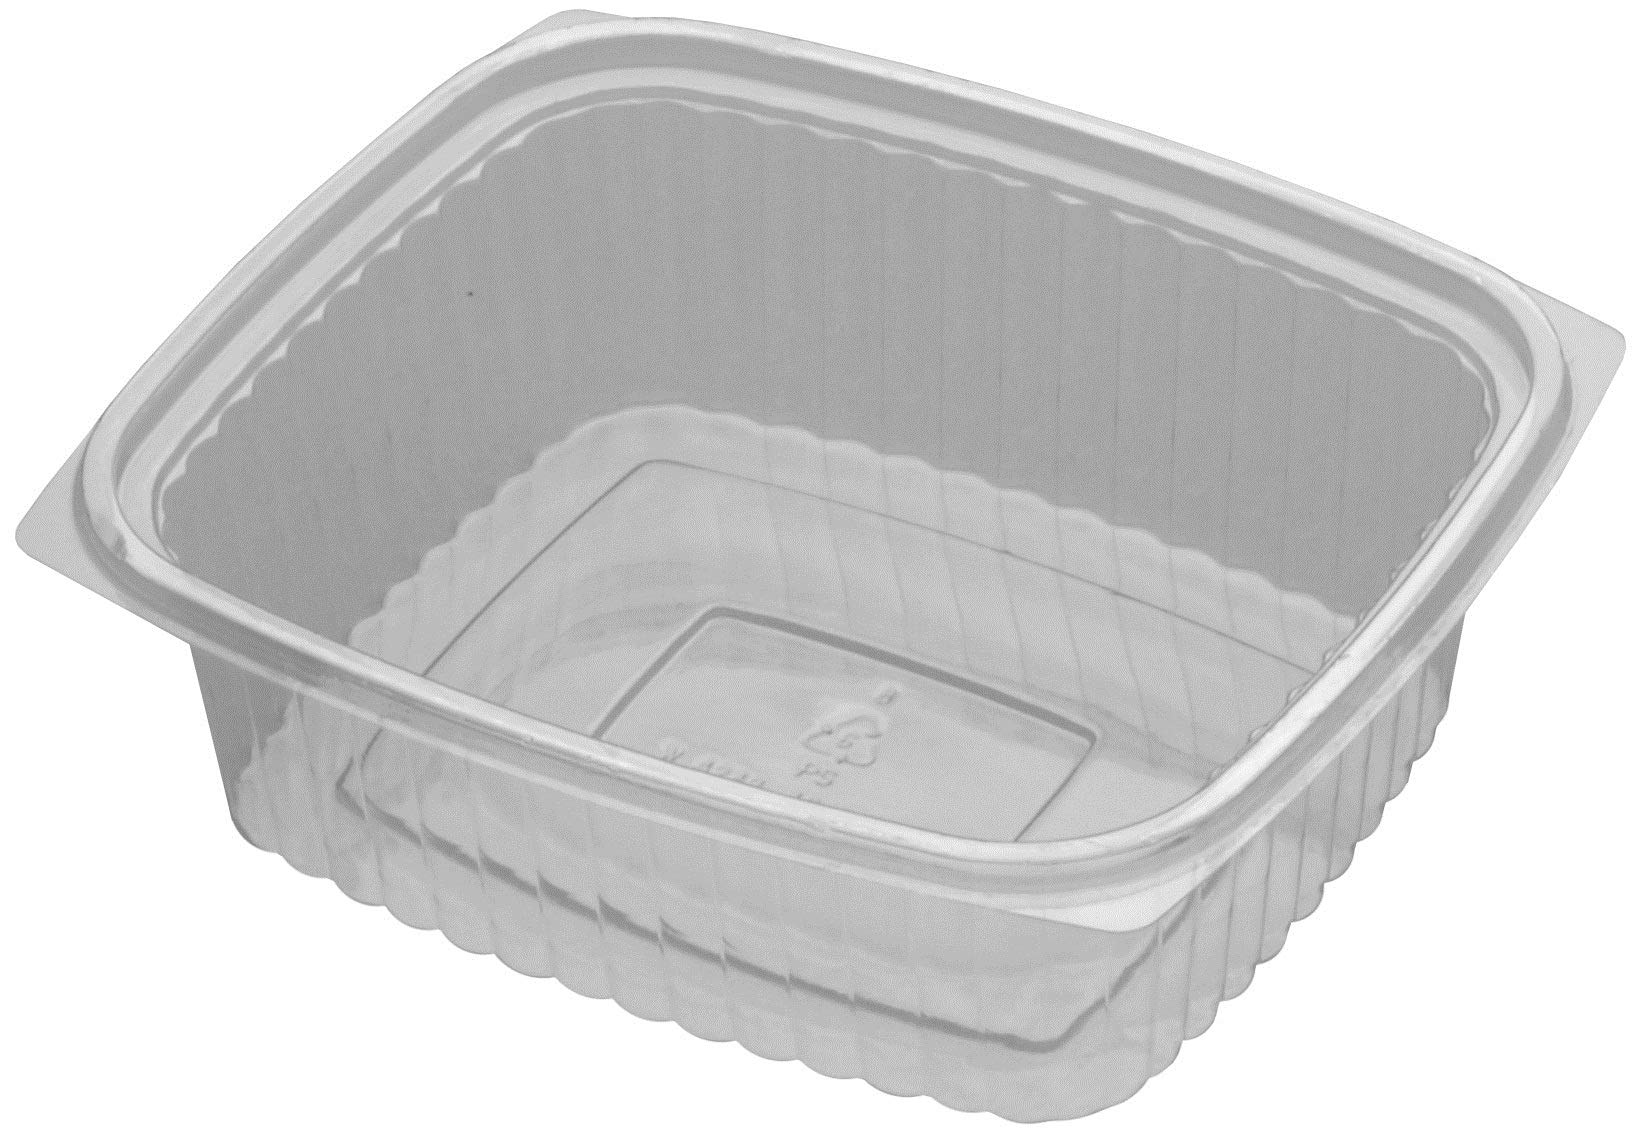 D and W Fine Pack Plastic Container, 32 Ounce - 250 per case.